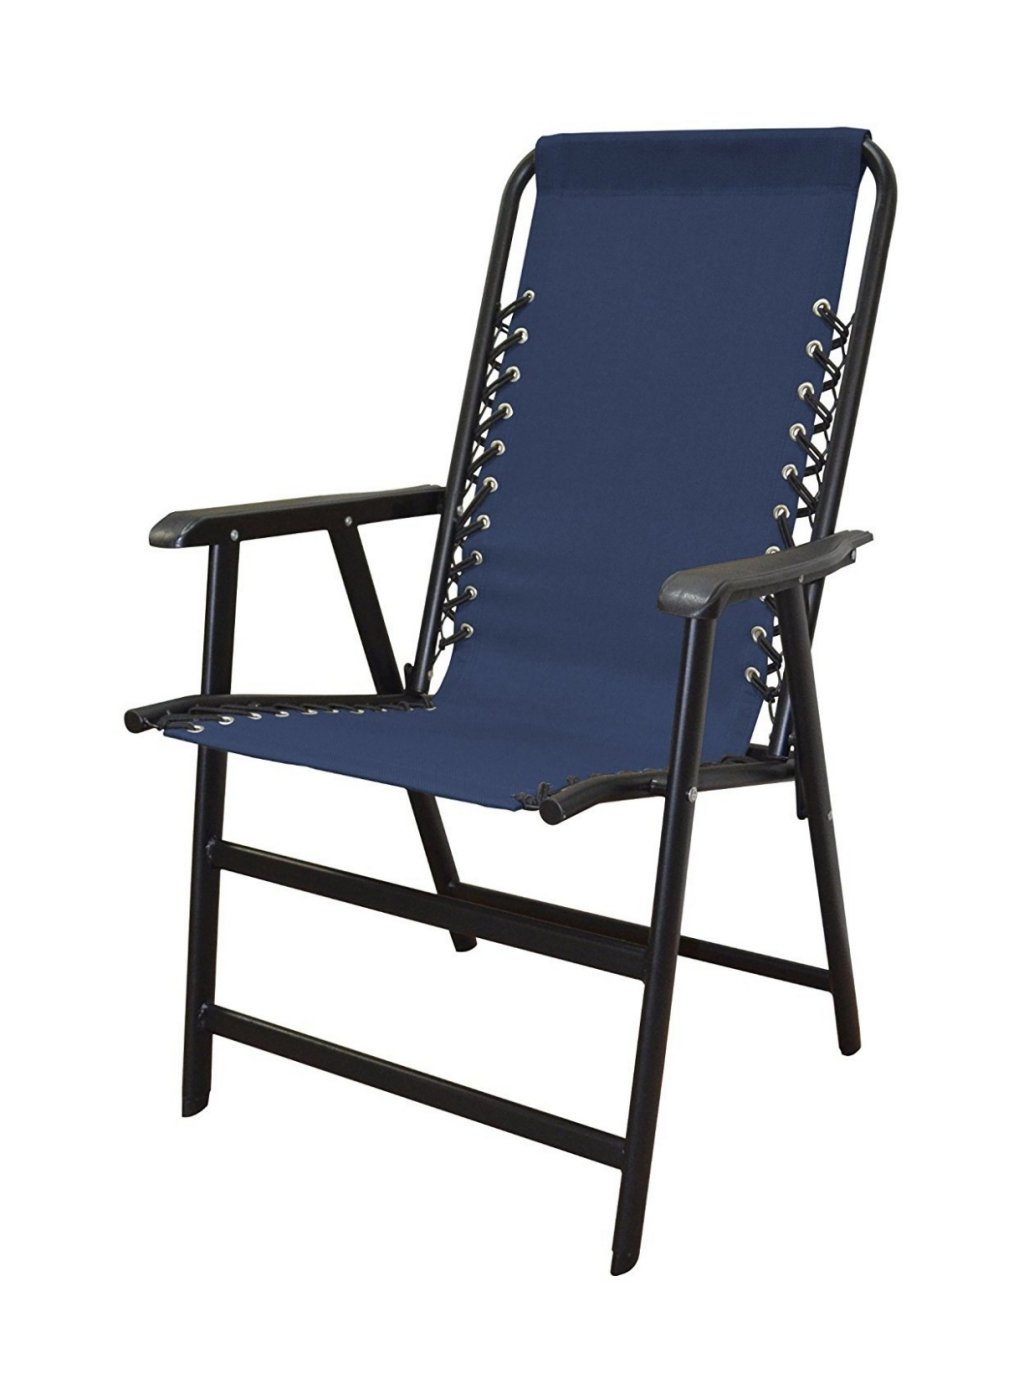 koonlert14 Outdoor Patio Folding Double Bungee System Chair Sturdy Steel Frame Lightweight Comfortable Durable Textaline Fabric Porch Garden Furniture - Blue #1940